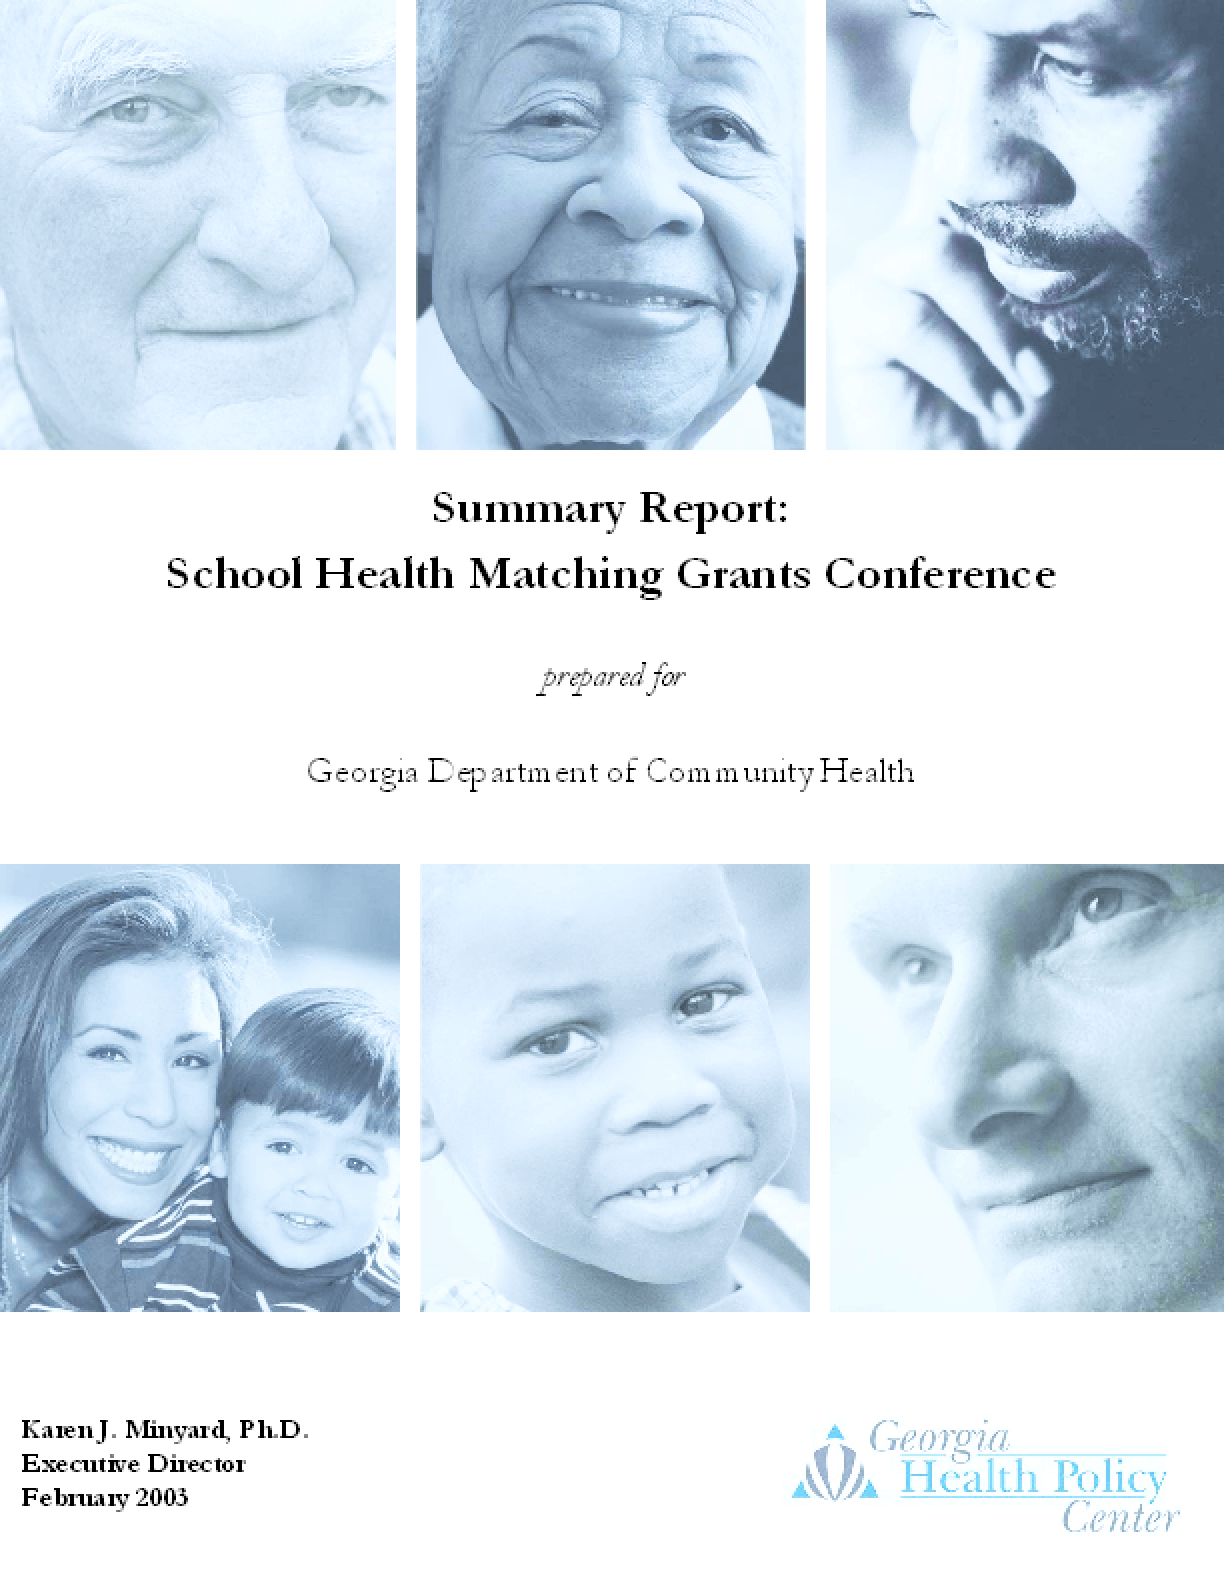 Summary Report: School Health Matching Grants Conference